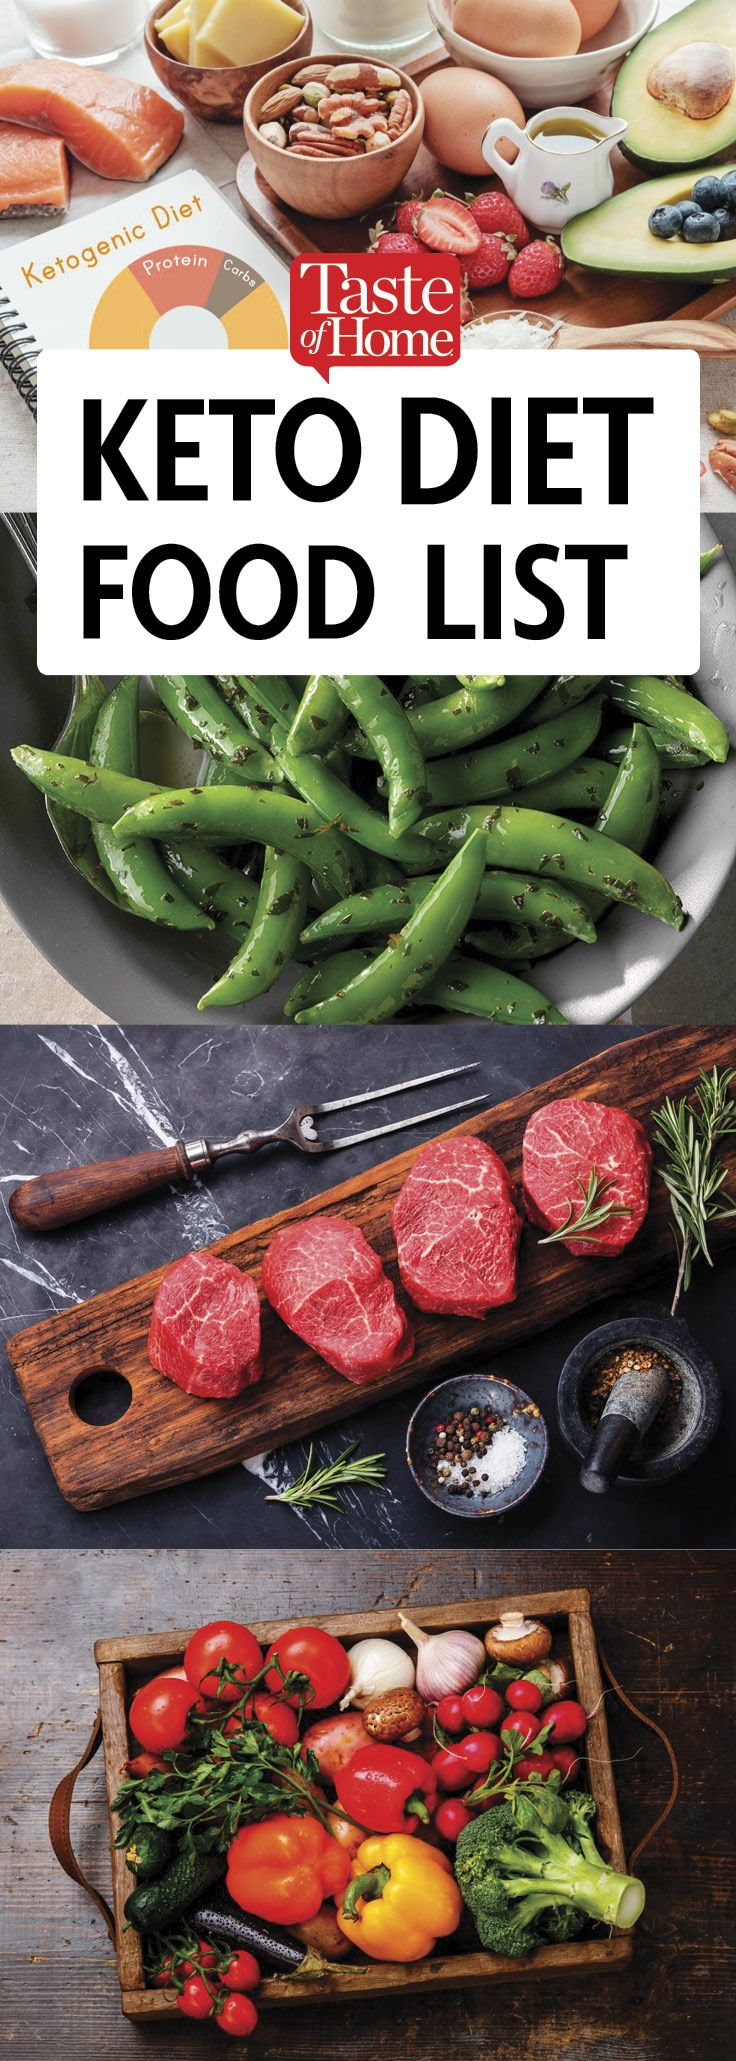 Here's What You Can Eat on the Keto Diet (With images